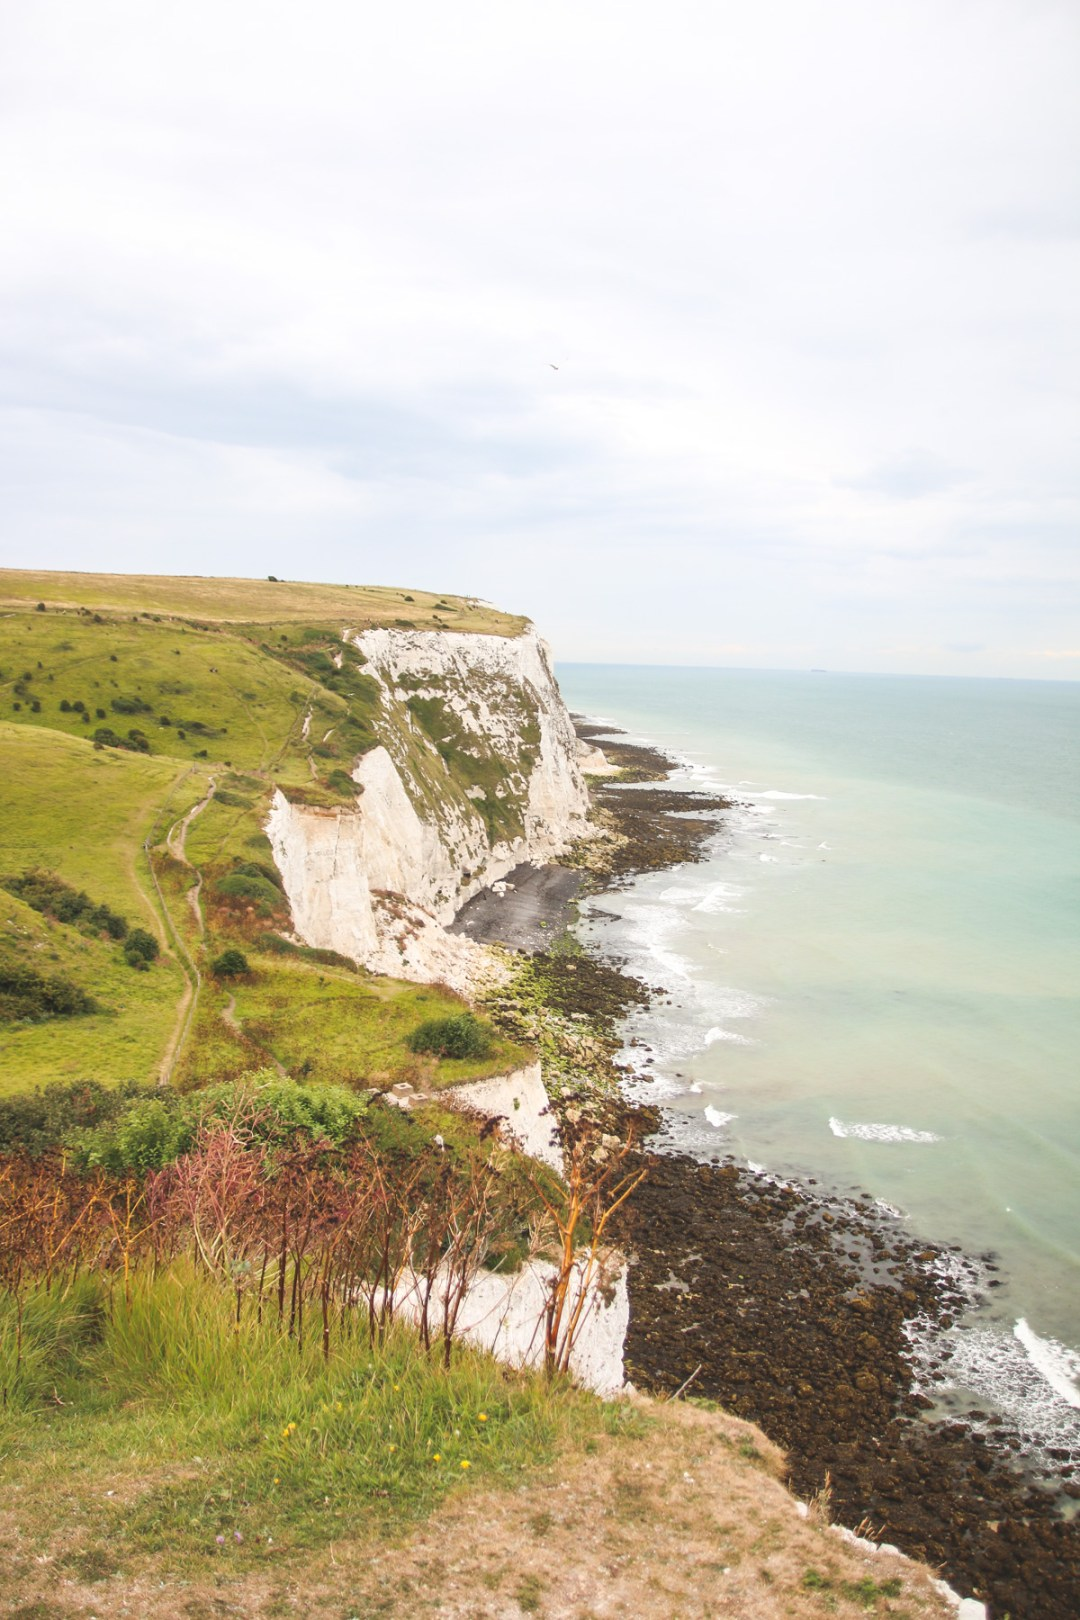 Views over the White Cliffs of Dover